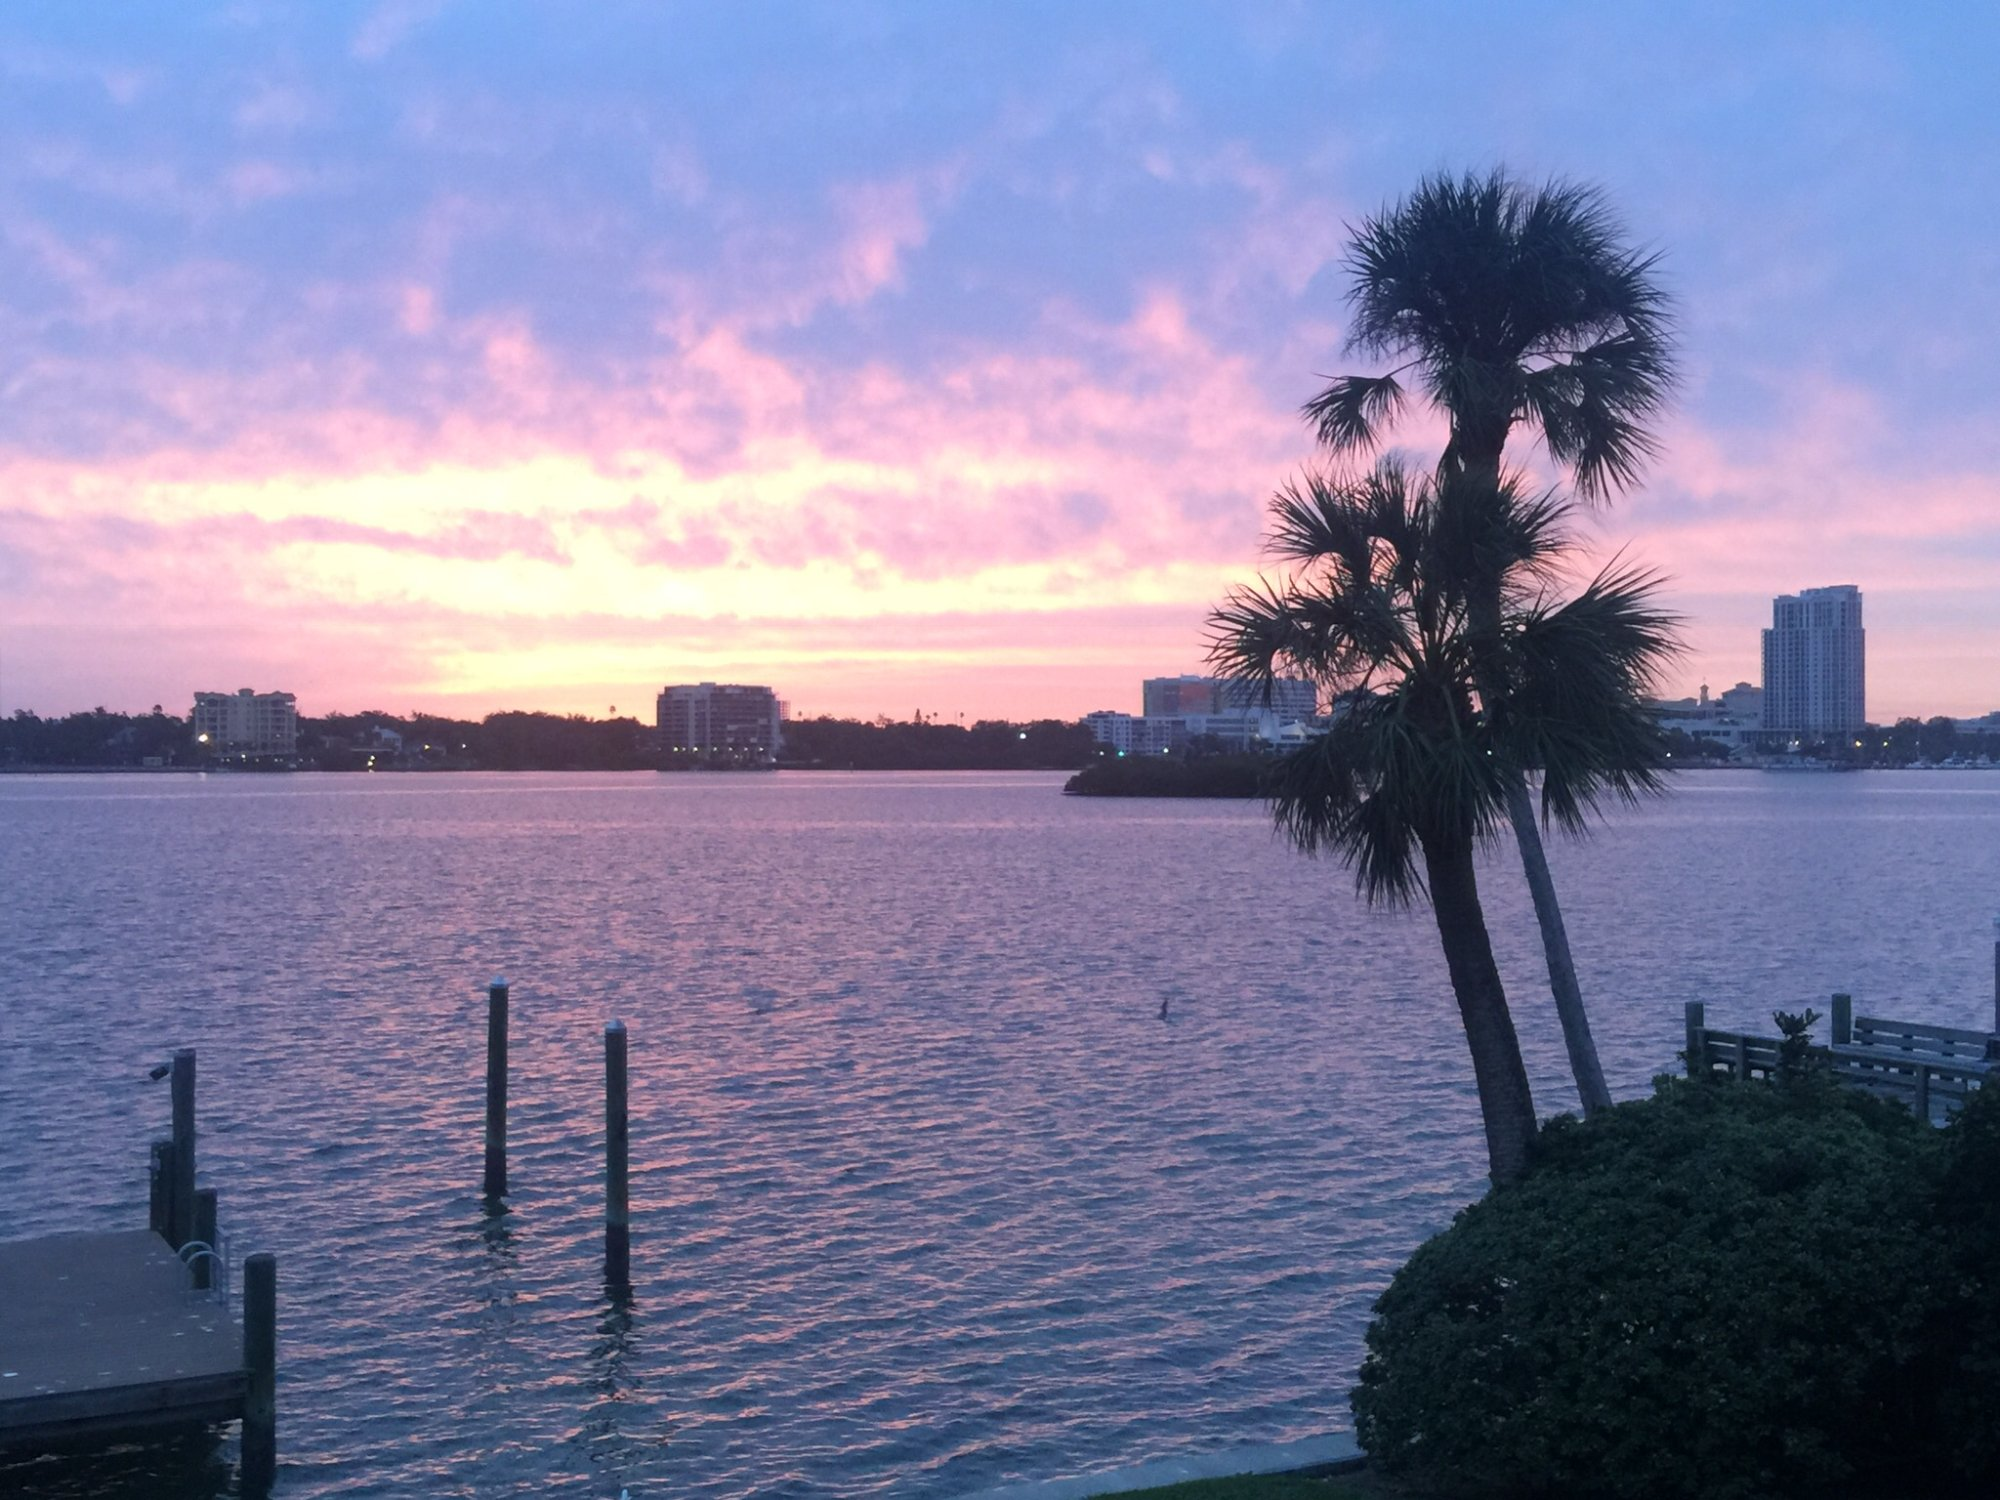 Downtown Clearwater, across the bay at sunrise - Beautiful!